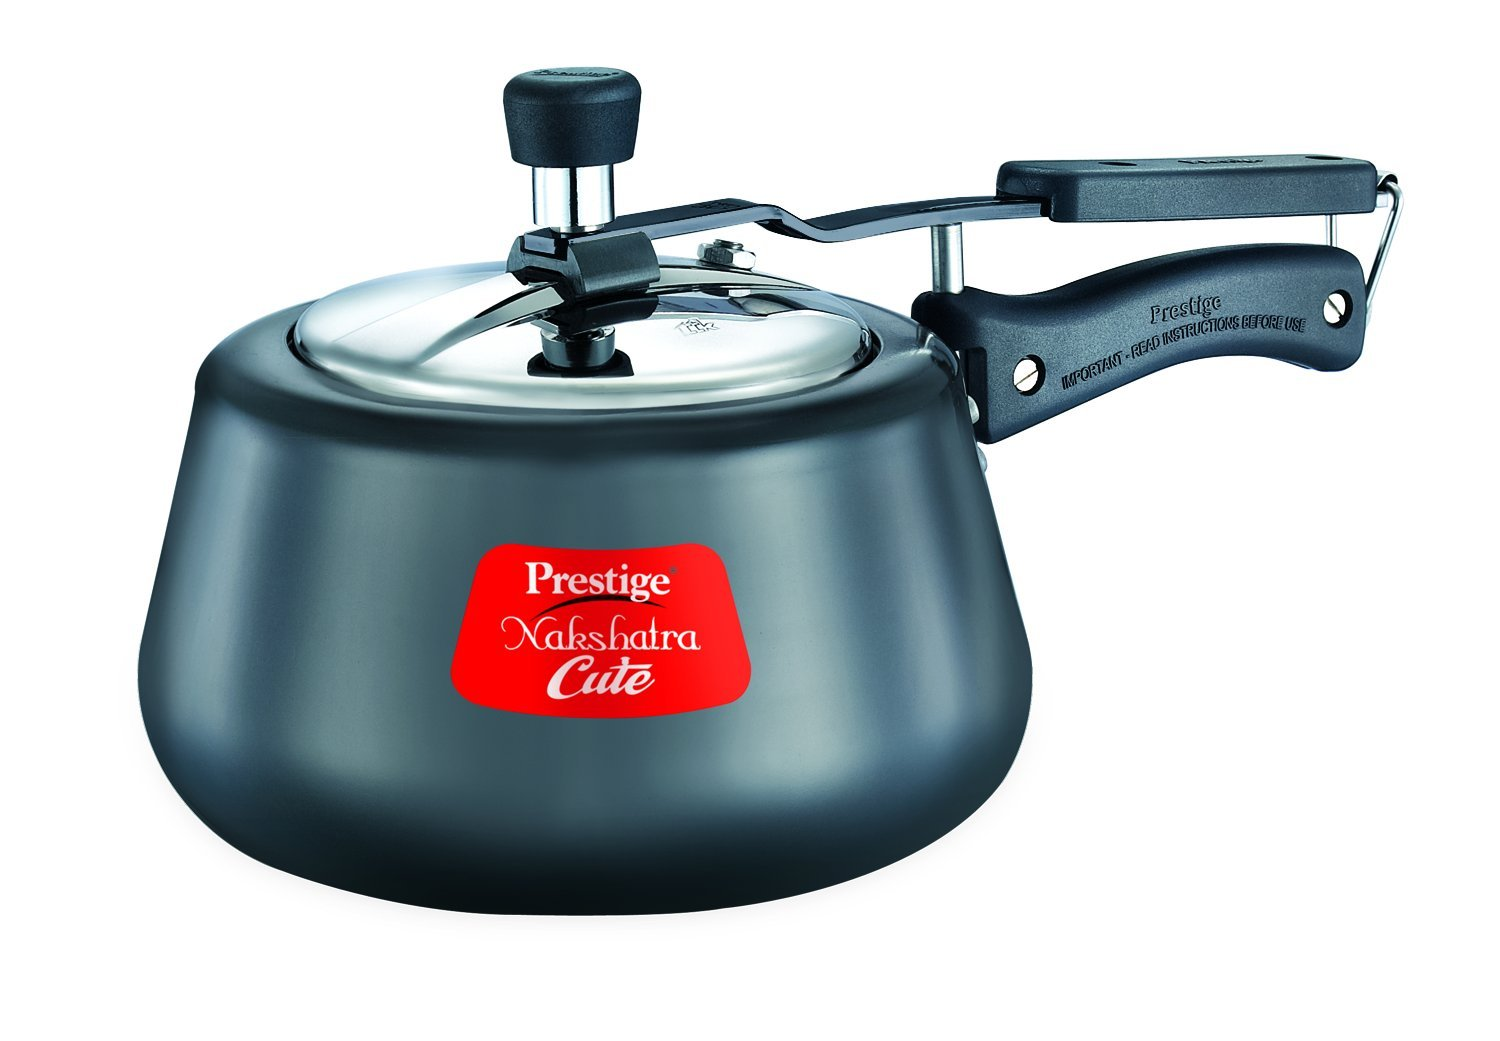 10 Best 3 Litre Pressure Cooker in India 2020 – Complete Review - Pressure Cooker